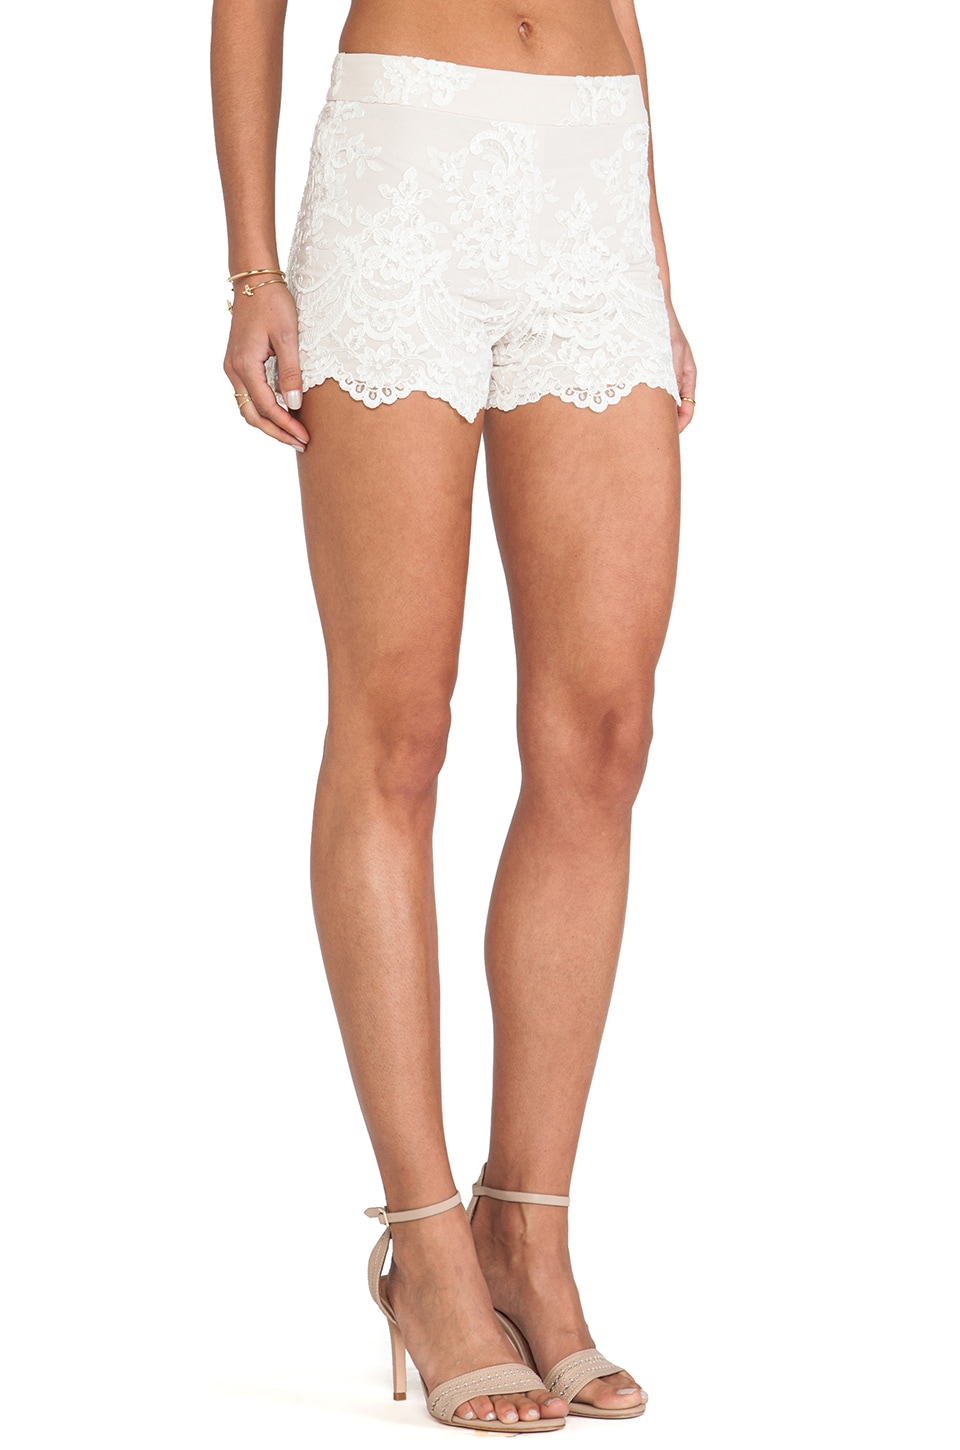 Alice   Olivia High Waisted Lace Short in Cream   REVOLVE